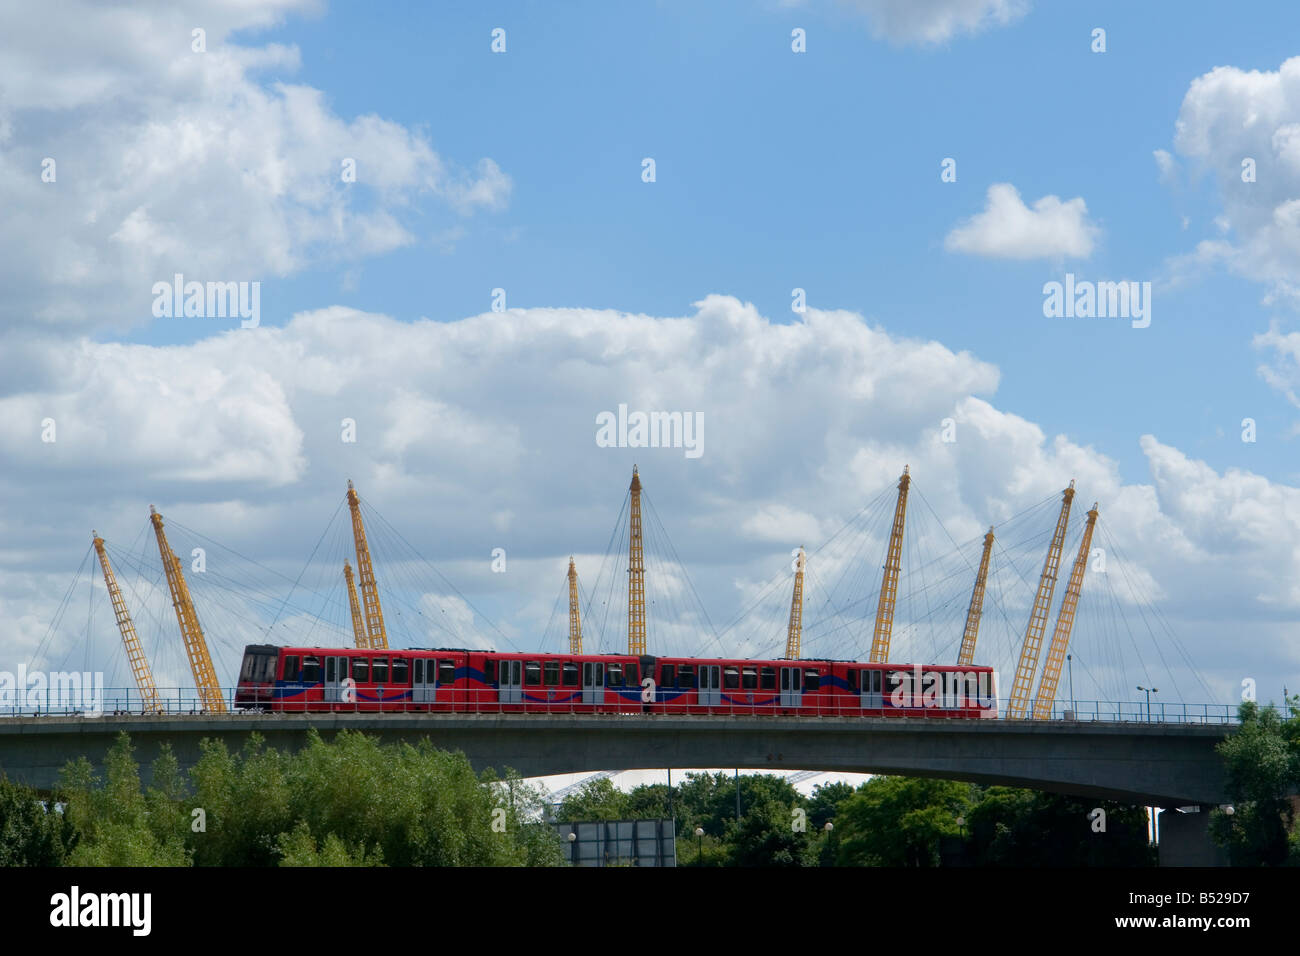 DLR - Docklands Light Railway train with poles of the millenium dome in the background - Blackwall - east London - Stock Image